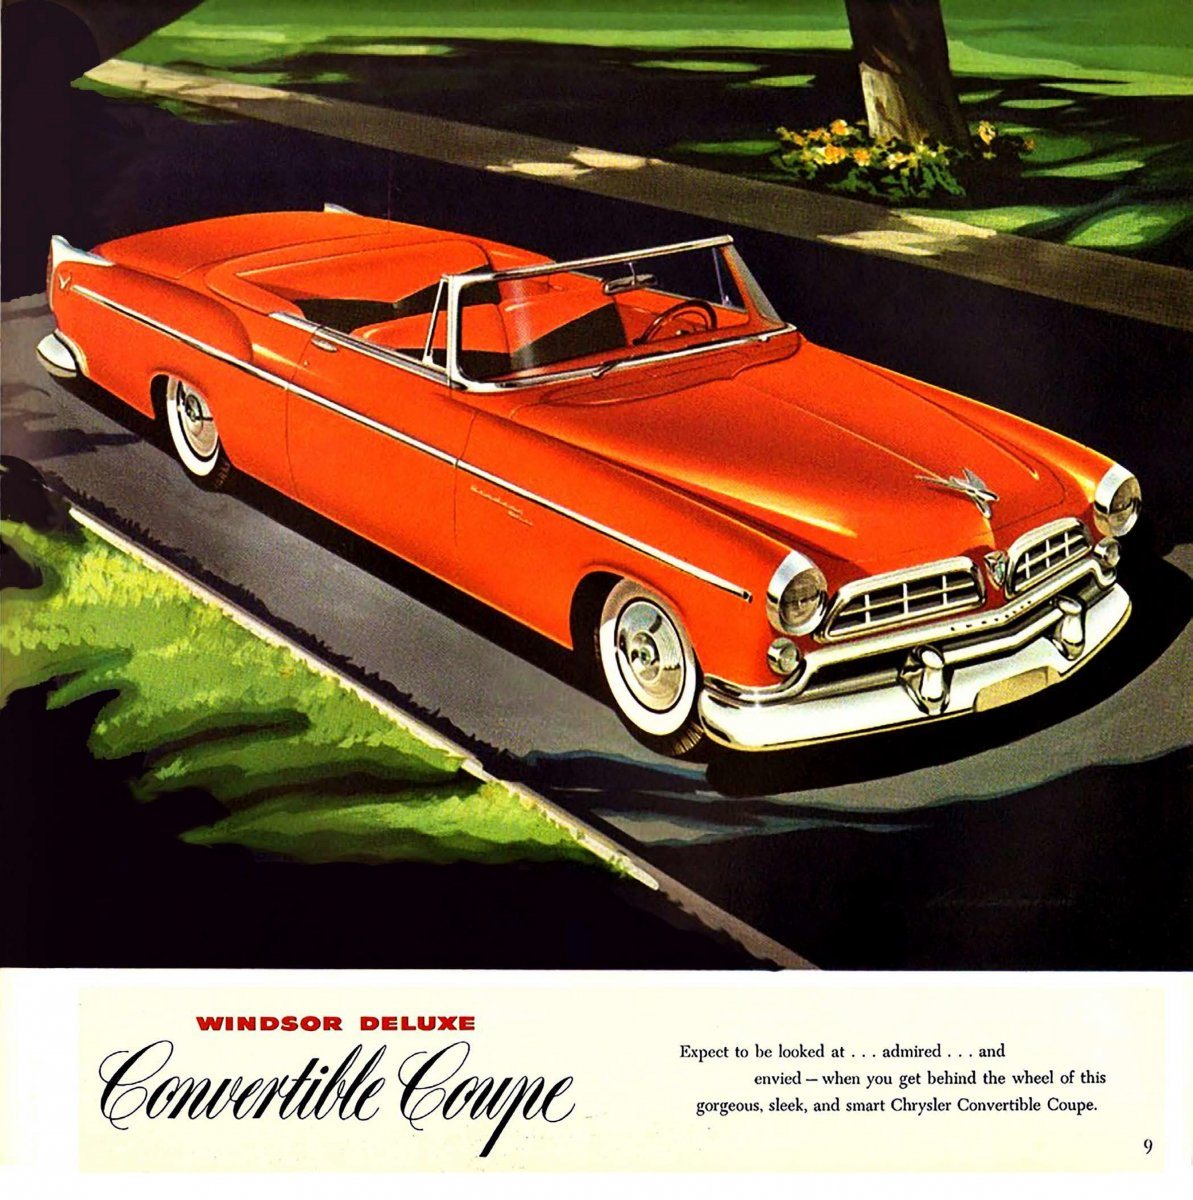 1955_Chrysler_Windsor_Brochure_1-16_09.jpg